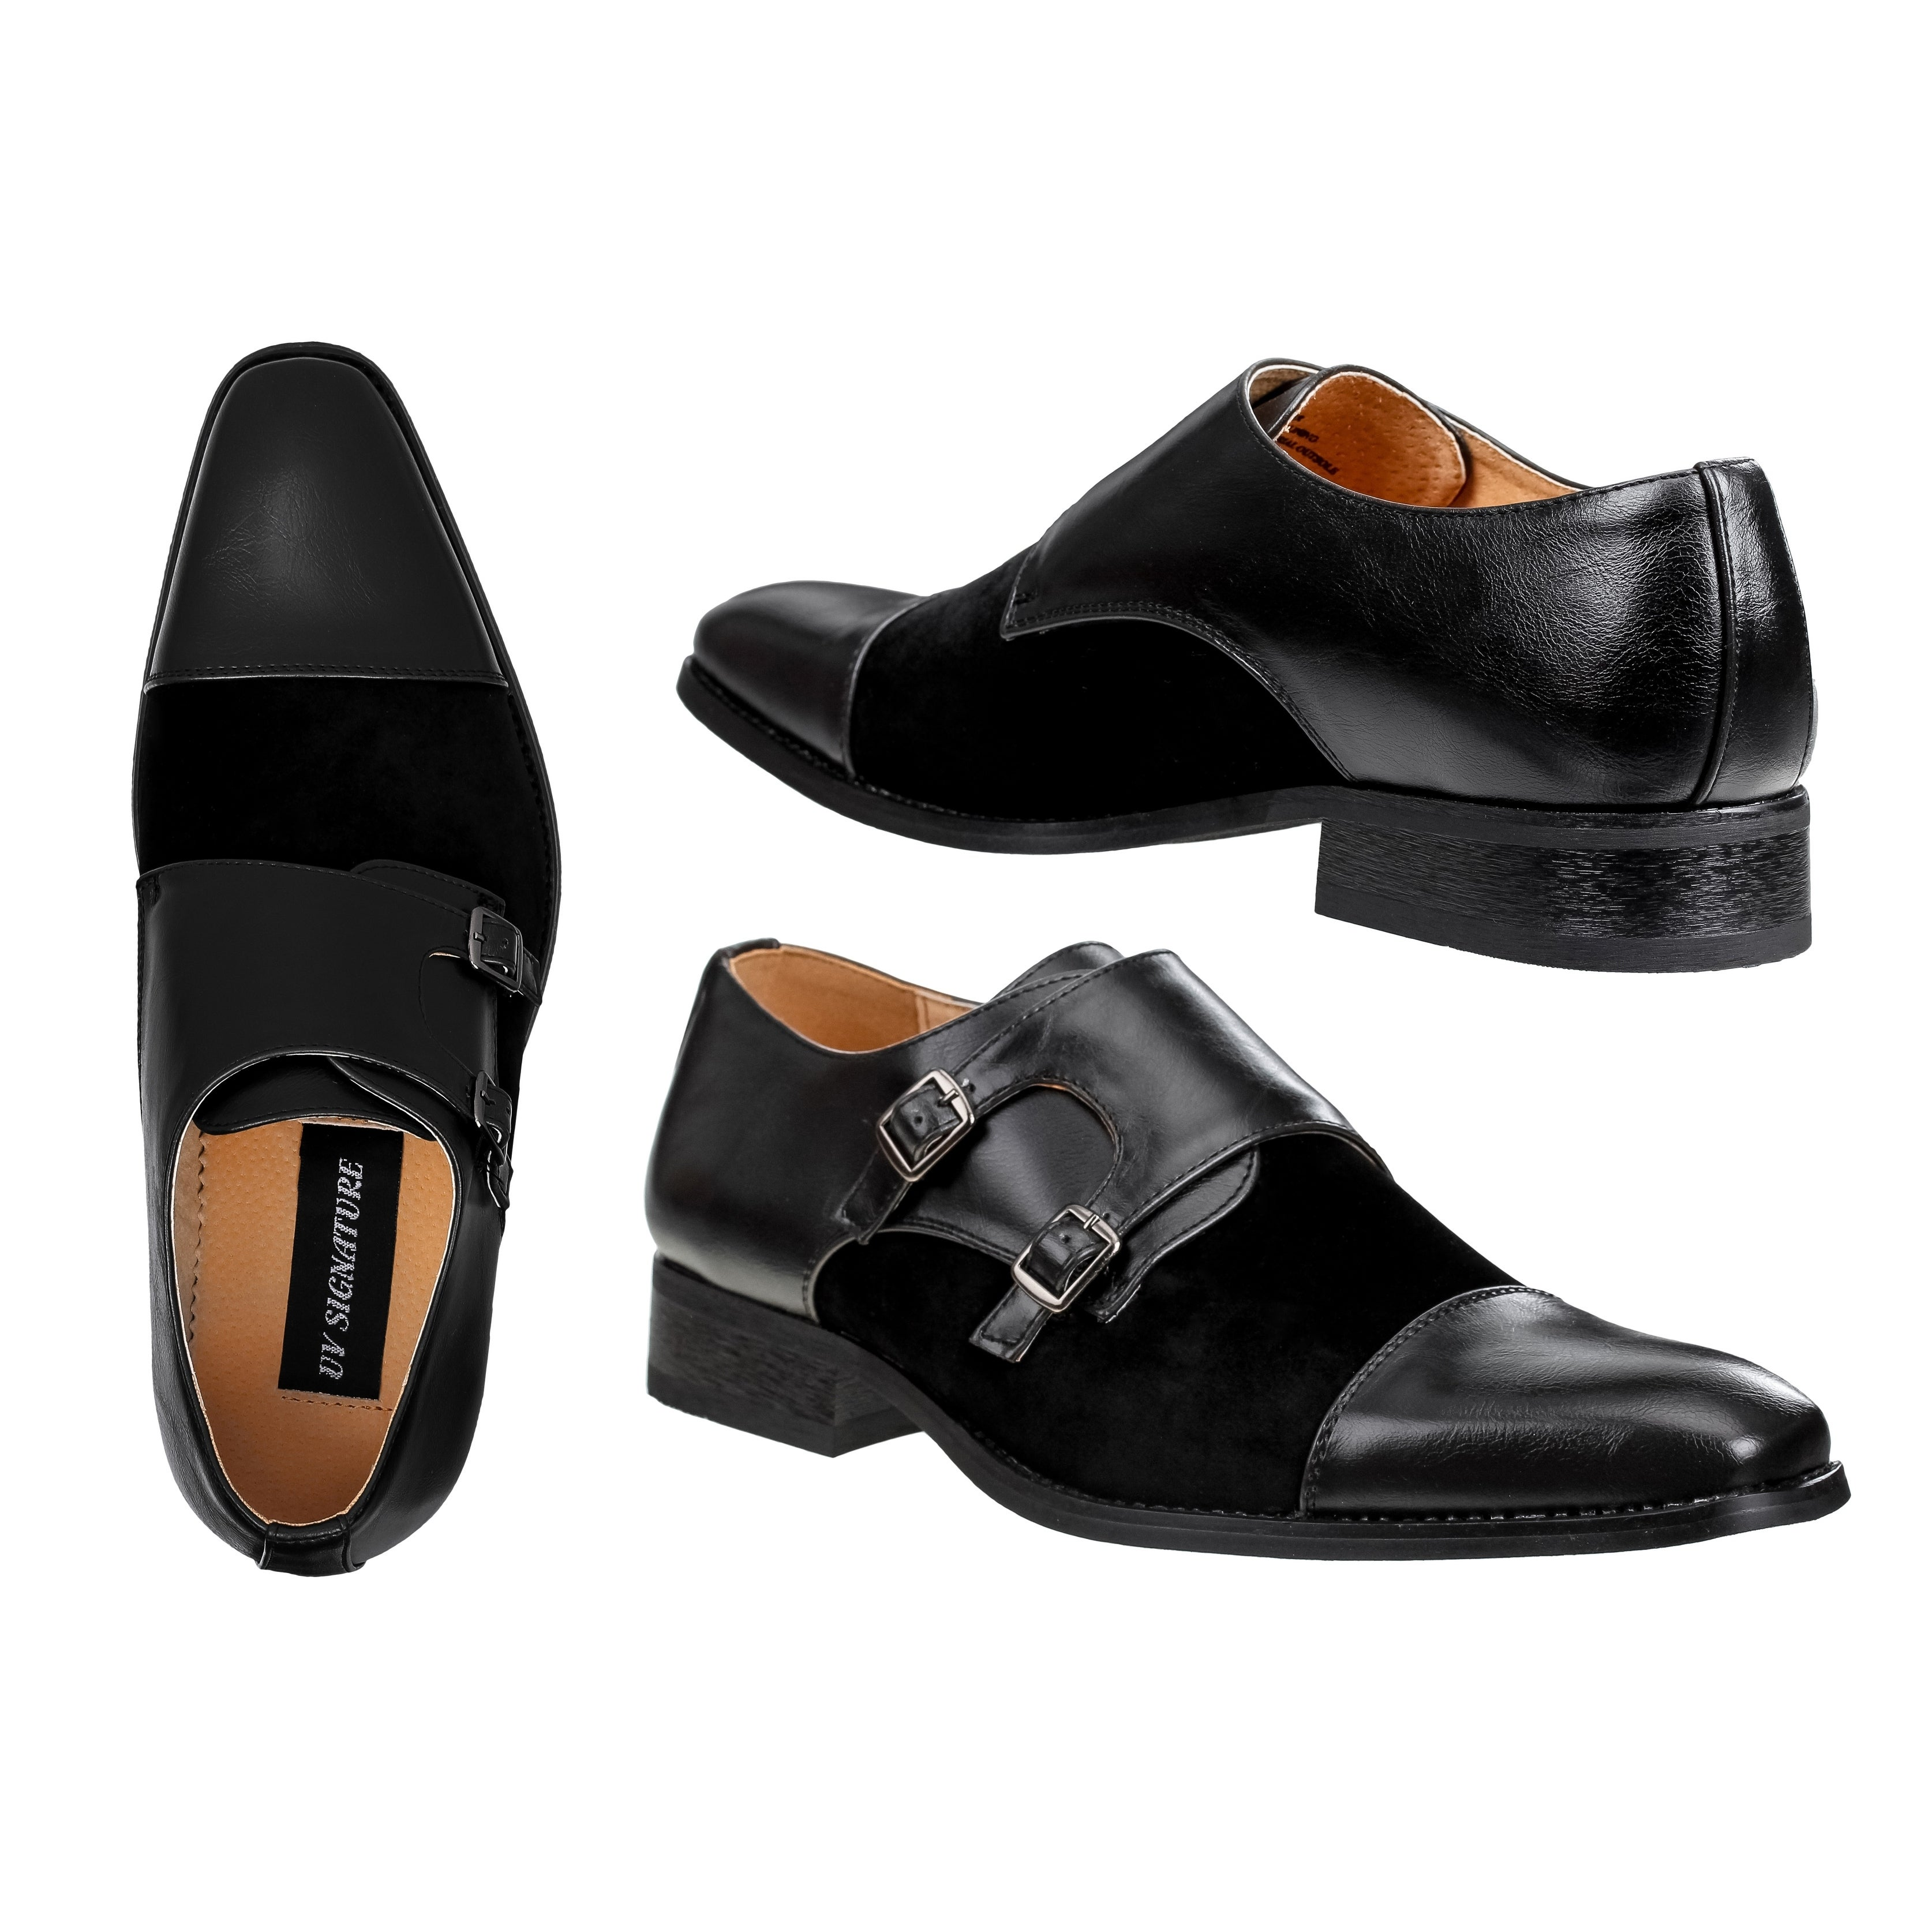 wear invest most what designer uk comforter gucci shoes the luxury news horsebit best comfortable fashion in dress to loafer